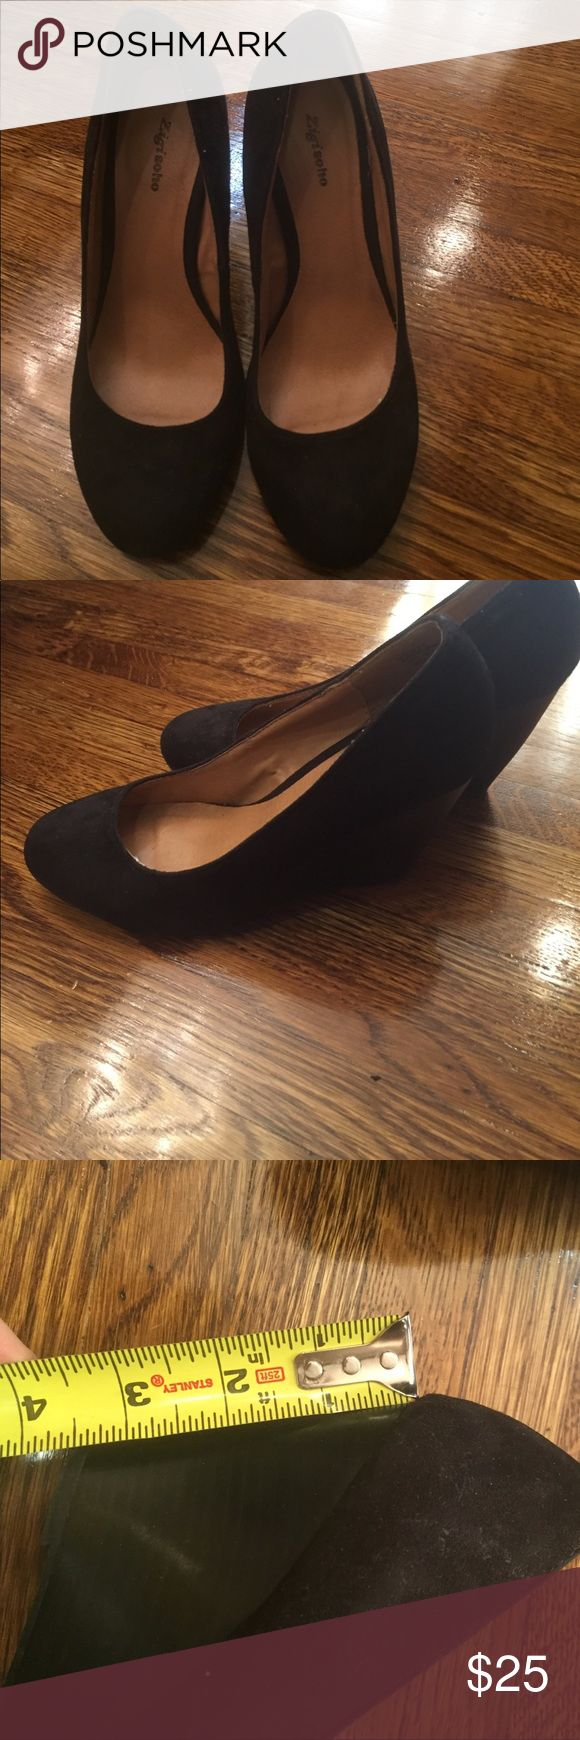 Black Velvet Closed Toe Wedge size 7.5 Black Velvet Closed Toe Wedge size 7.5 perfect with jeans, pants, or dresses and skirt. Wonderful soft material with comfortable insole and platform block heels make these cuties perfect for work or a night out. Worn once, like new! Contact me with any questions. Zigi Soho Shoes Wedges